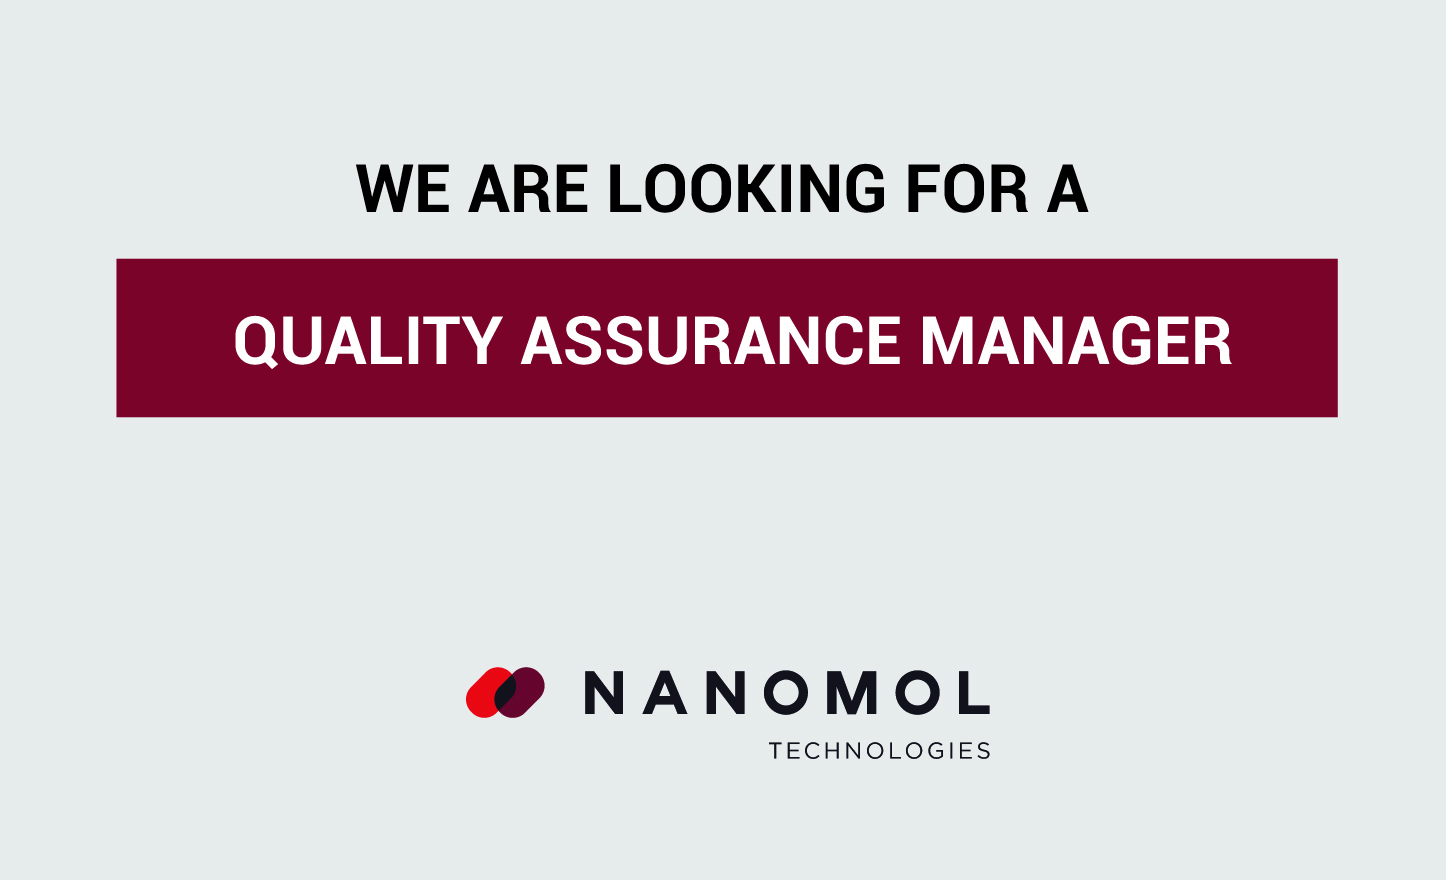 We Are Hiring a Quality Assurance Manager